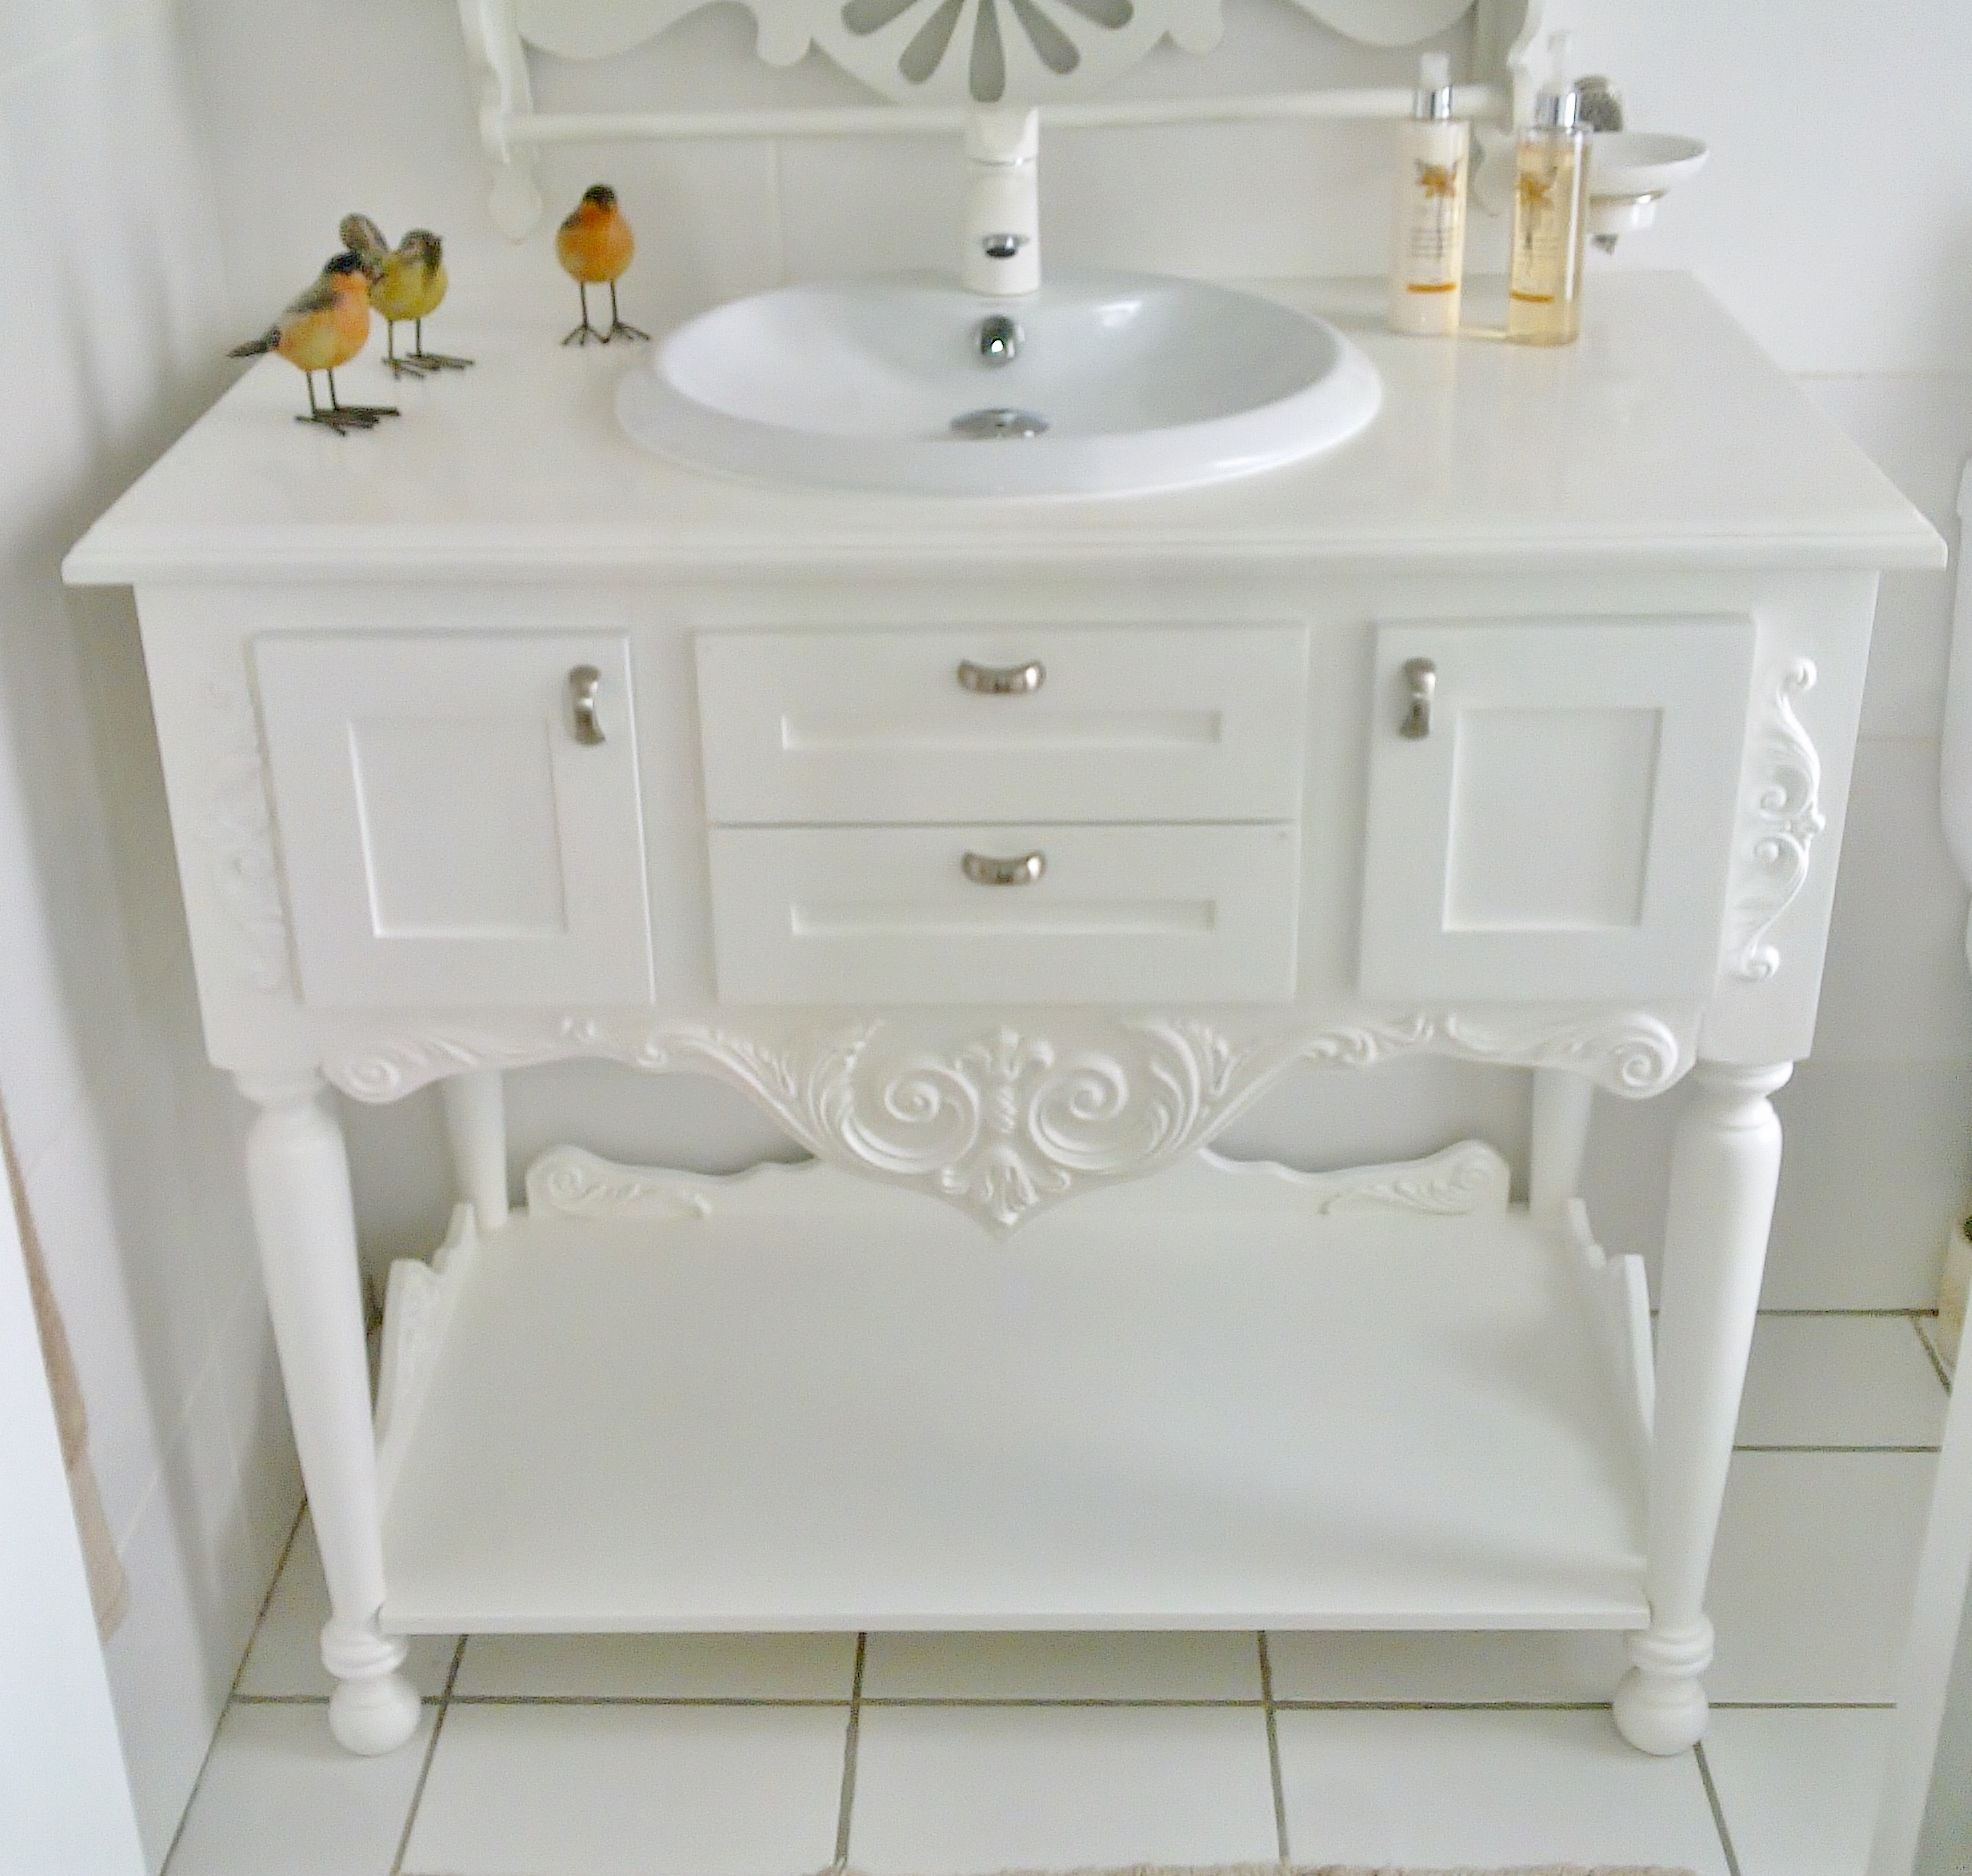 Country Antique Bathroom Vanity with Detail Decor and Stunning